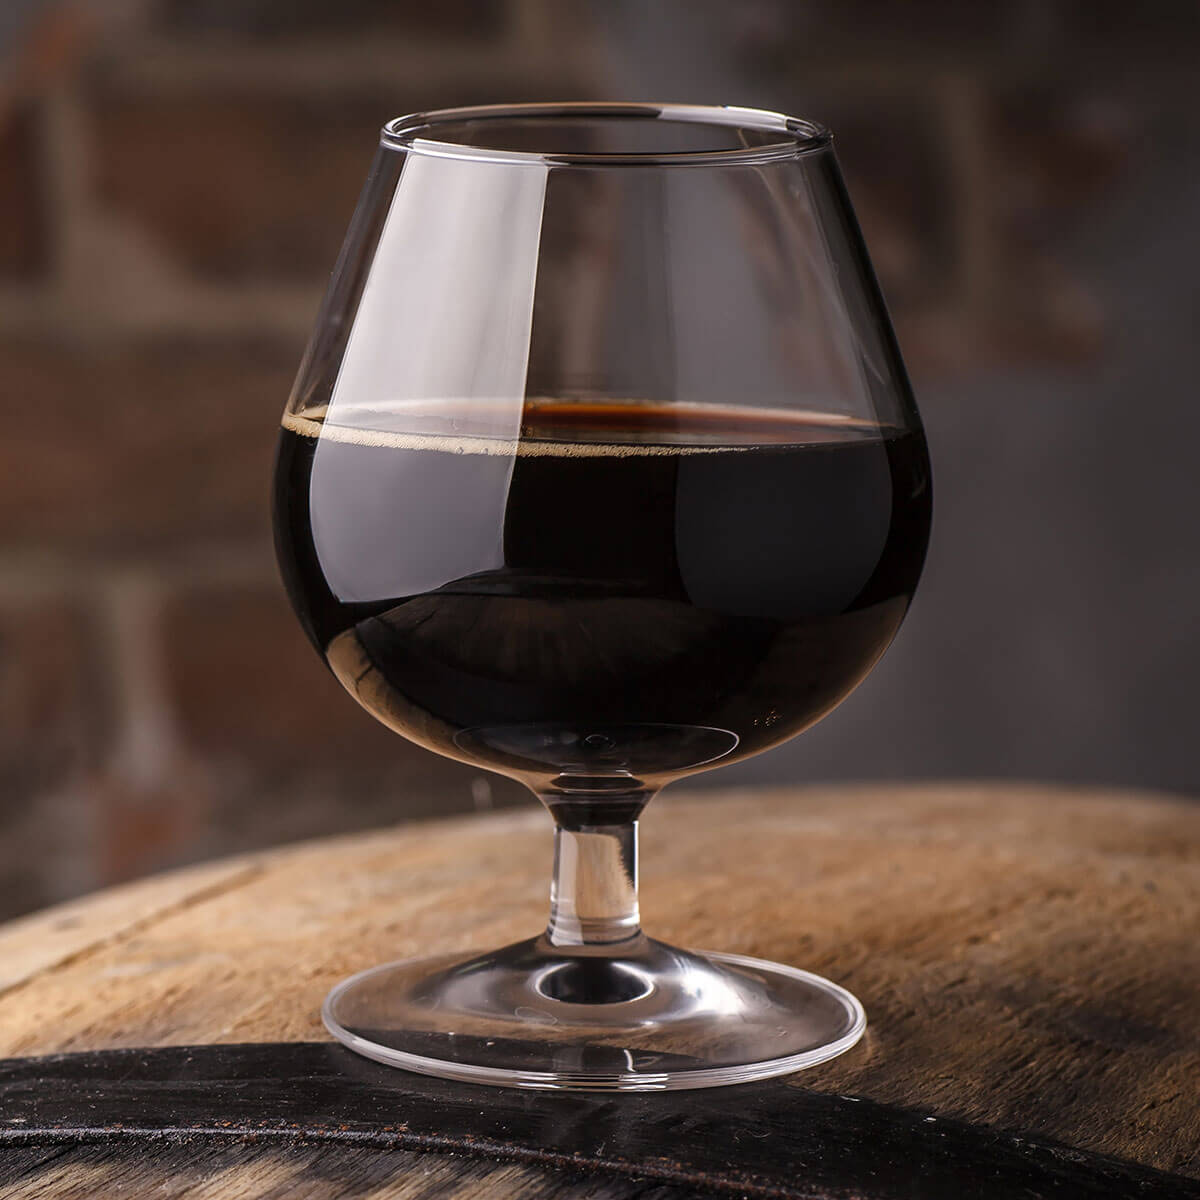 Baltic Porter in a Snifter